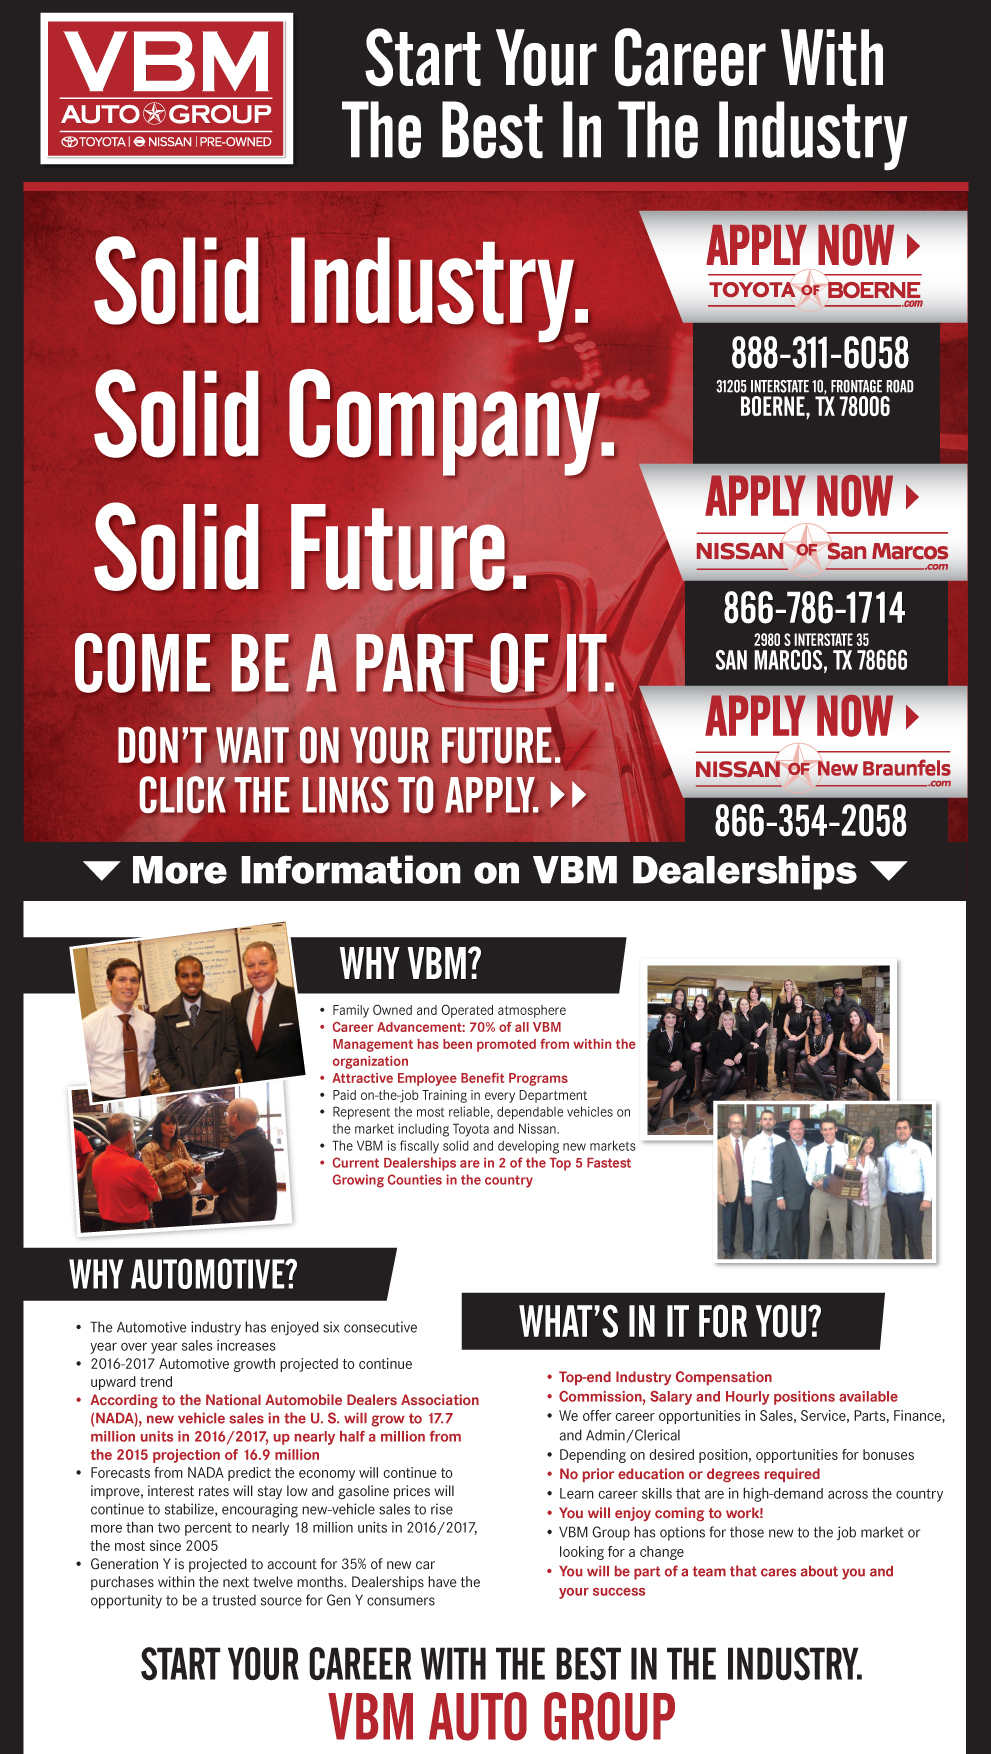 Solid Industry.Solid Company.Solid Future. Come Be A Part of It. don't wait on your future. Click the links to apply. Why VBM: •	Family Owned and Operated atmosphere •	Career Advancement: 70% of all VBM 		Management has been  promoted from within the 		organization •	Attractive Employee Benefit Programs including 		FREE  individual Health Care* •	Paid on-the-job Training in every Department  •	Represent the most reliable, dependable vehicles on 		the market including Toyota and Nissan.  •	The VBM is fiscally solid and developing new markets •	Current Dealerships are in 2 of the Top 5 Fastest 		Growing  Counties in the country Why Automotive: •	The Automotive industry has enjoyed four consecutive 	year over year sales increases •	2015-2017 Automotive growth projected to continue 	upward trend •	According to the National Automobile Dealers Association 		(NADA), new vehicle sales in the U.S. will grow to 16.9 		million units in 2015, up more than half a million from the 		2014 projection of 16.4 million    •	Forecasts from NADA predict the economy will continue to 		improve, interest rates will stay low and gasoline prices will 		continue to stabilize, encouraging new-vehicle sales to rise 		more than three percent to nearly 17 million units in 2015, 		the most since 2005  •	Generation Y is projected to account for 40 percent of 		new-car purchases within the next five years. Dealerships have 	the opportunity to be a trusted source for Gen Y consumers   What's In it for You? •	Top-end Industry Compensation  •	Commission, Salary and Hourly positions available •	We offer career opportunities in Sales, Service, Parts, Finance, 	and Admin/Clerical •	Depending on desired position, opportunities for bonuses  •	No prior education or degrees required •	Learn career skills that are in high-demand across the country •	Complimentary Individual Healthcare* •	You will enjoy coming to work! •	VBM Group has options for those new to the job market or 		looking for a change •	You will be part of a team that cares about you and 	your success     START your career with the best in the industry. VBM Auto group